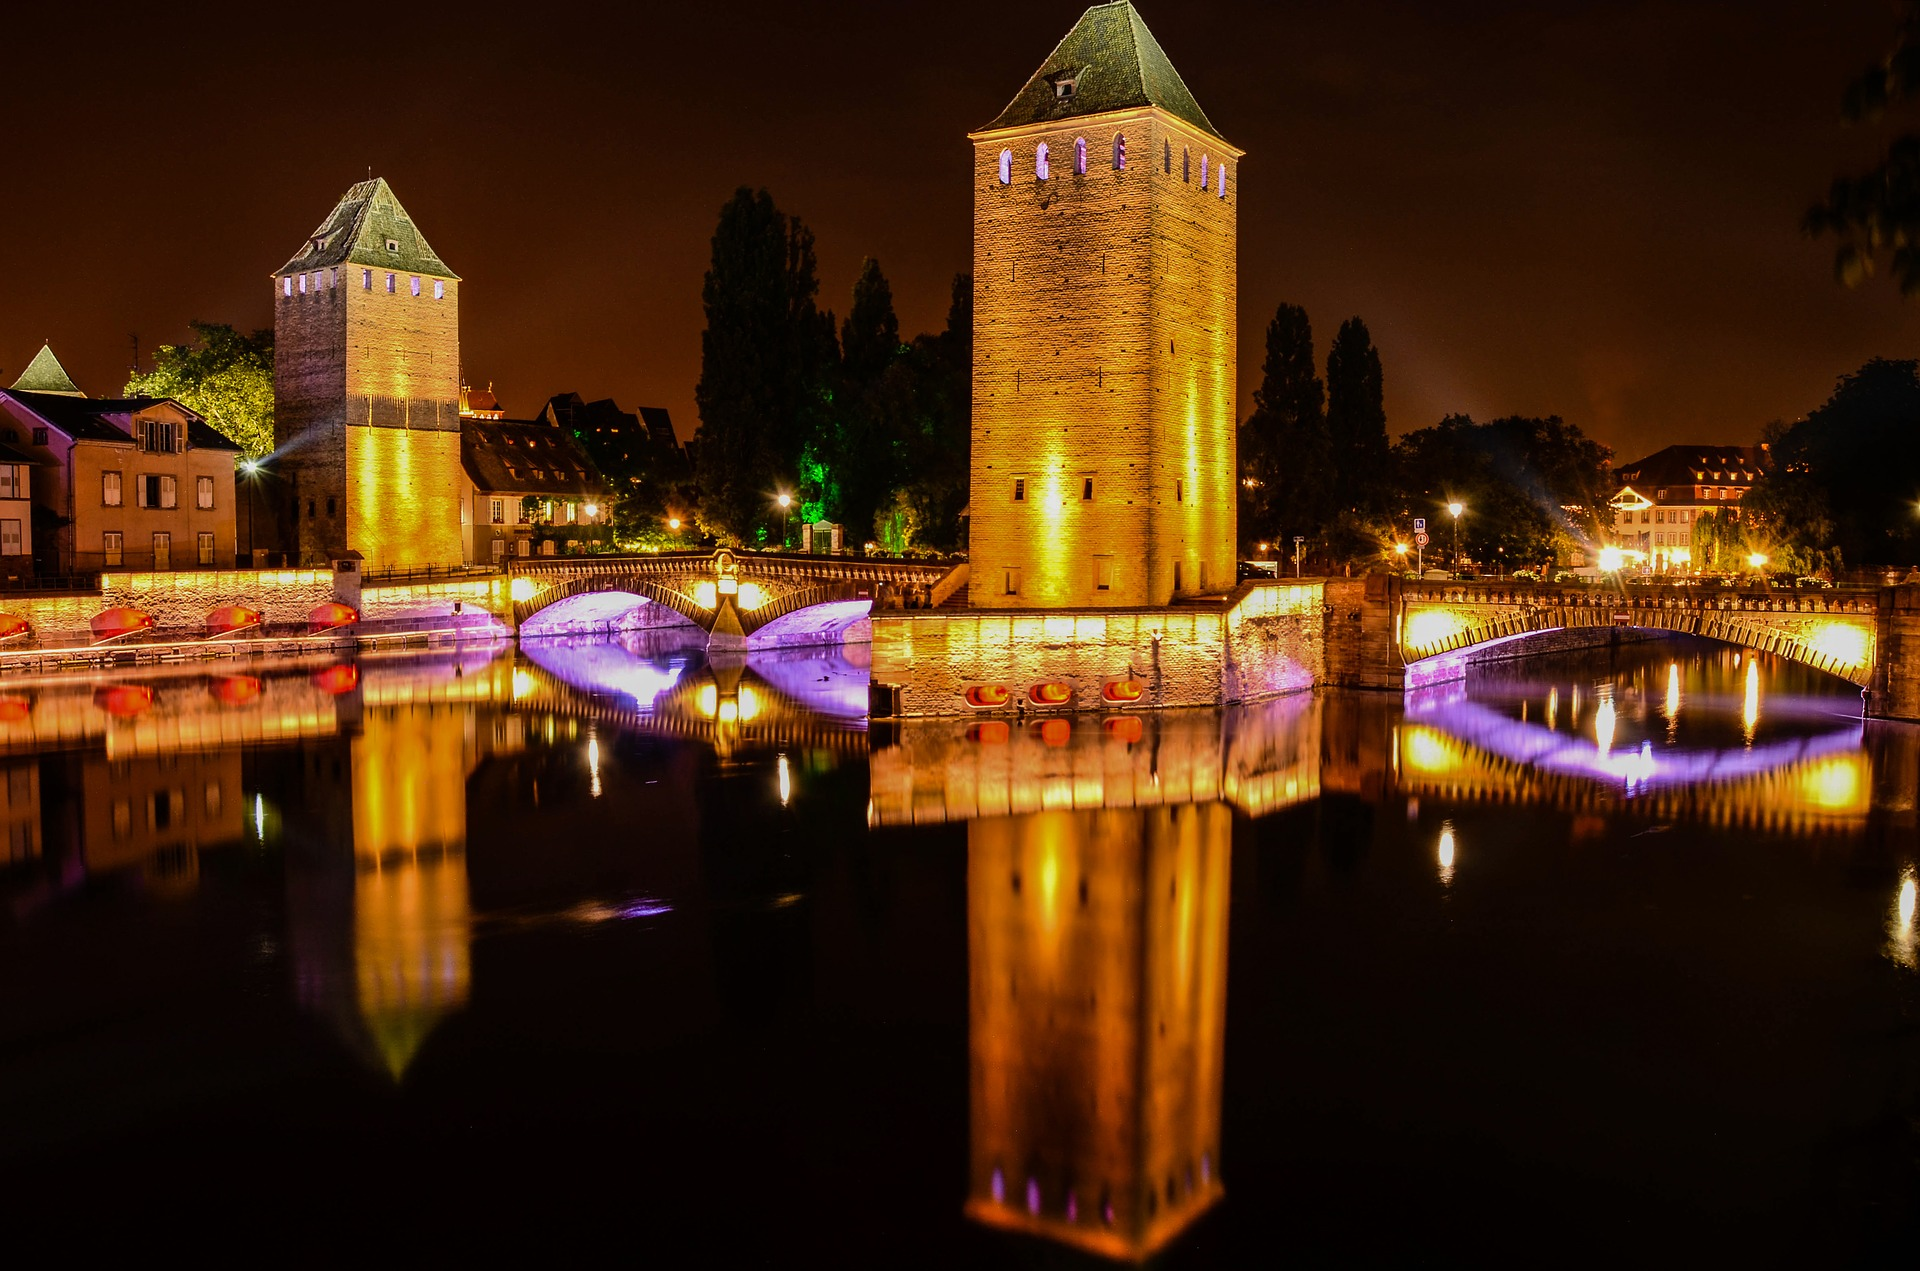 Strasbourg_by_night_CC0.jpg?1545665691